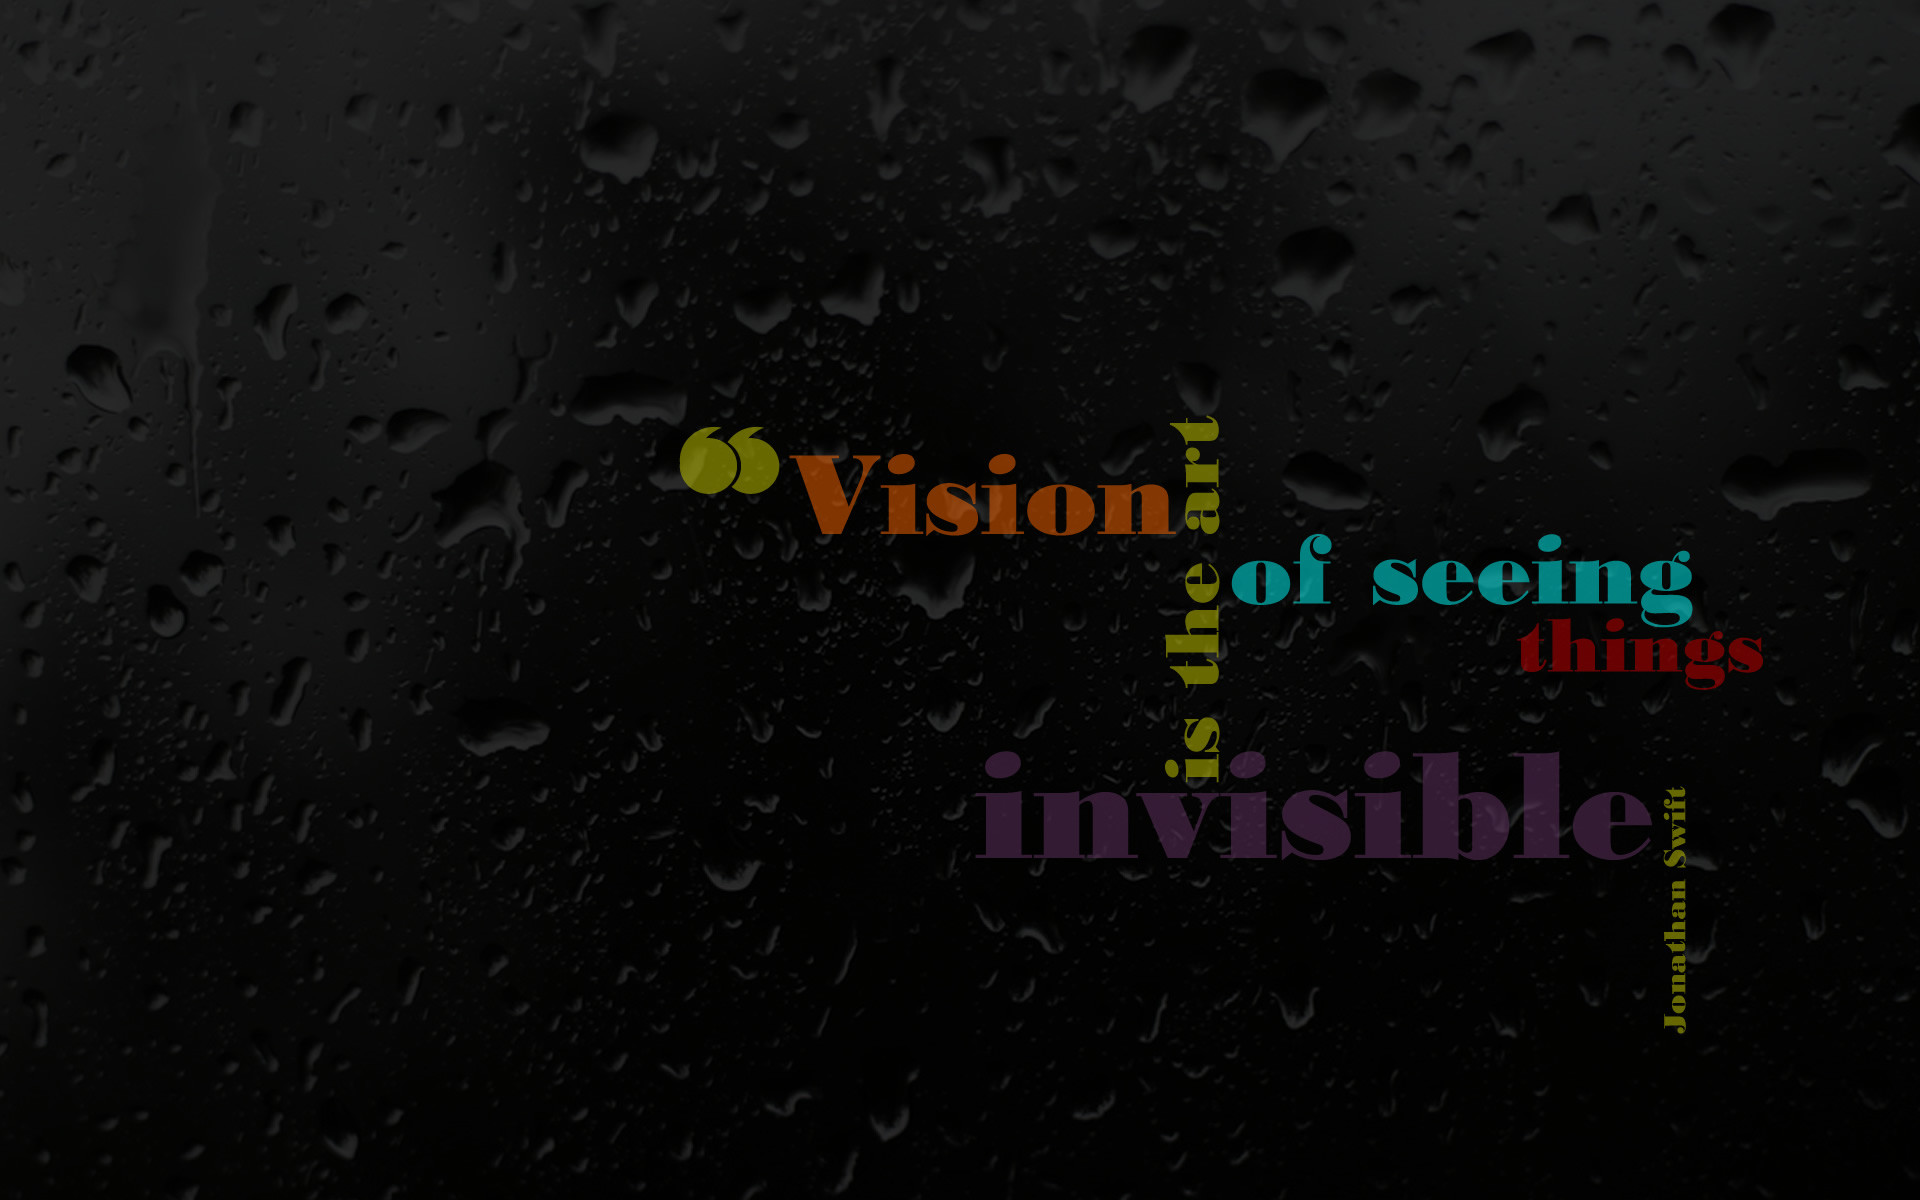 Inspirational Wallpapers Computer Wallpaper Quotes - B2st Mastermind Album Cover - HD Wallpaper